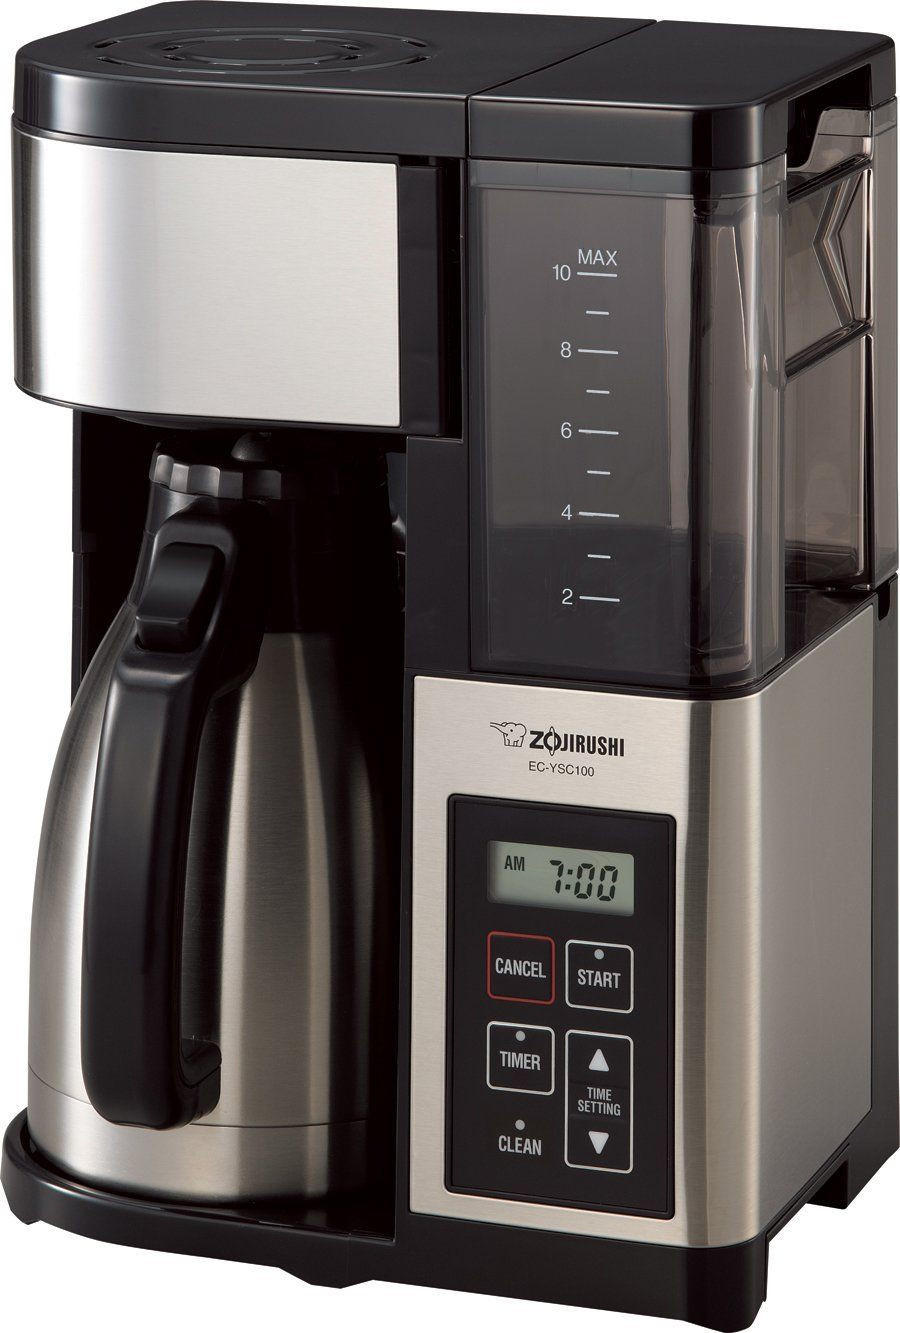 Zojirushi Ec Ysc100 Fresh Brew Plus Thermal Carafe Coffee Maker 10 Cup Stainless Steel Black Learn More By Visiting The Image Link